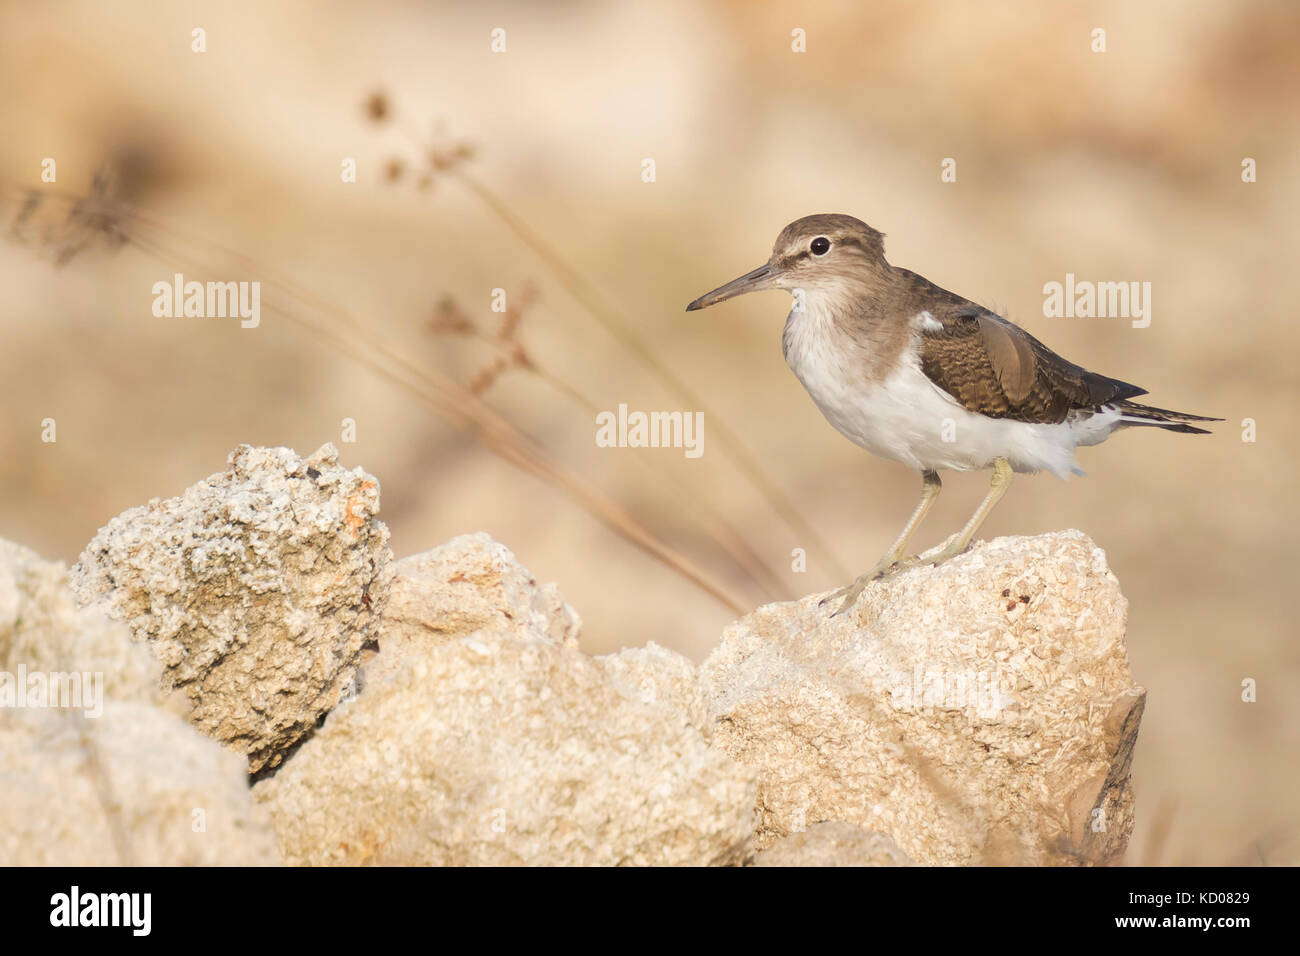 Common Sandpiper (Actitis hypoleucos) on the lookout perched on a rock - Stock Image